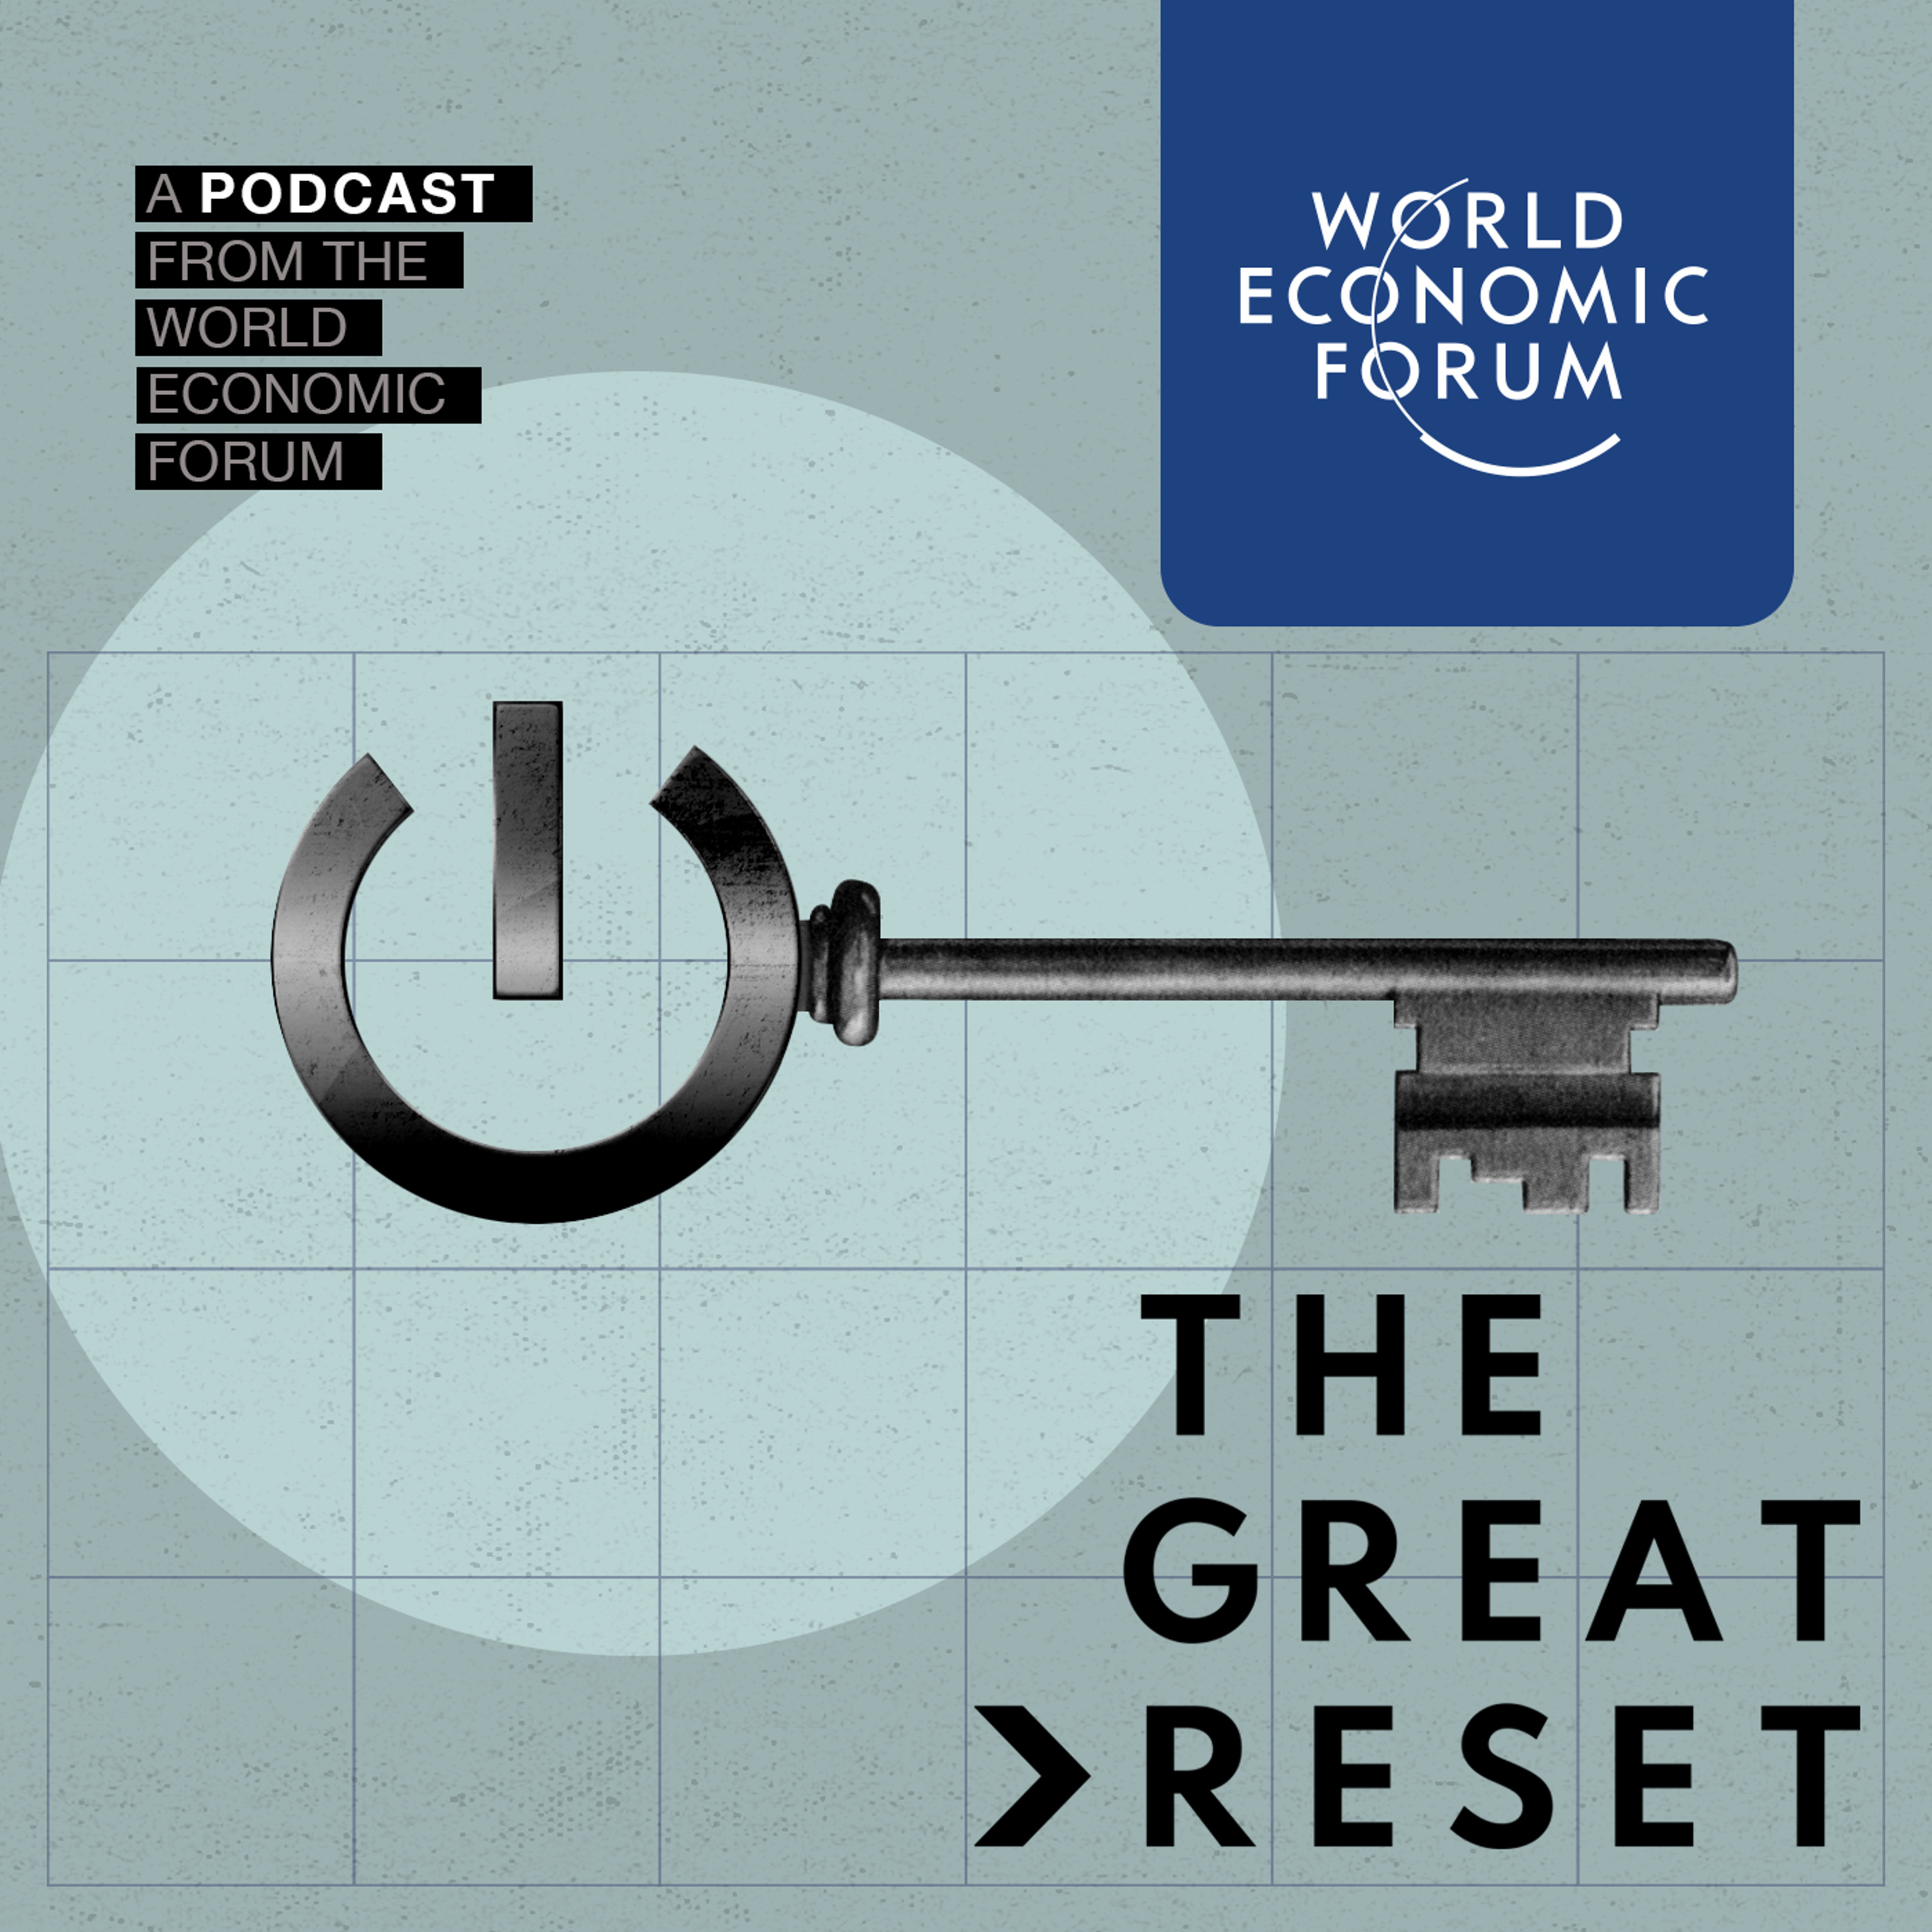 The Great Reset: Sustainable Development Impact Summit - Day 3